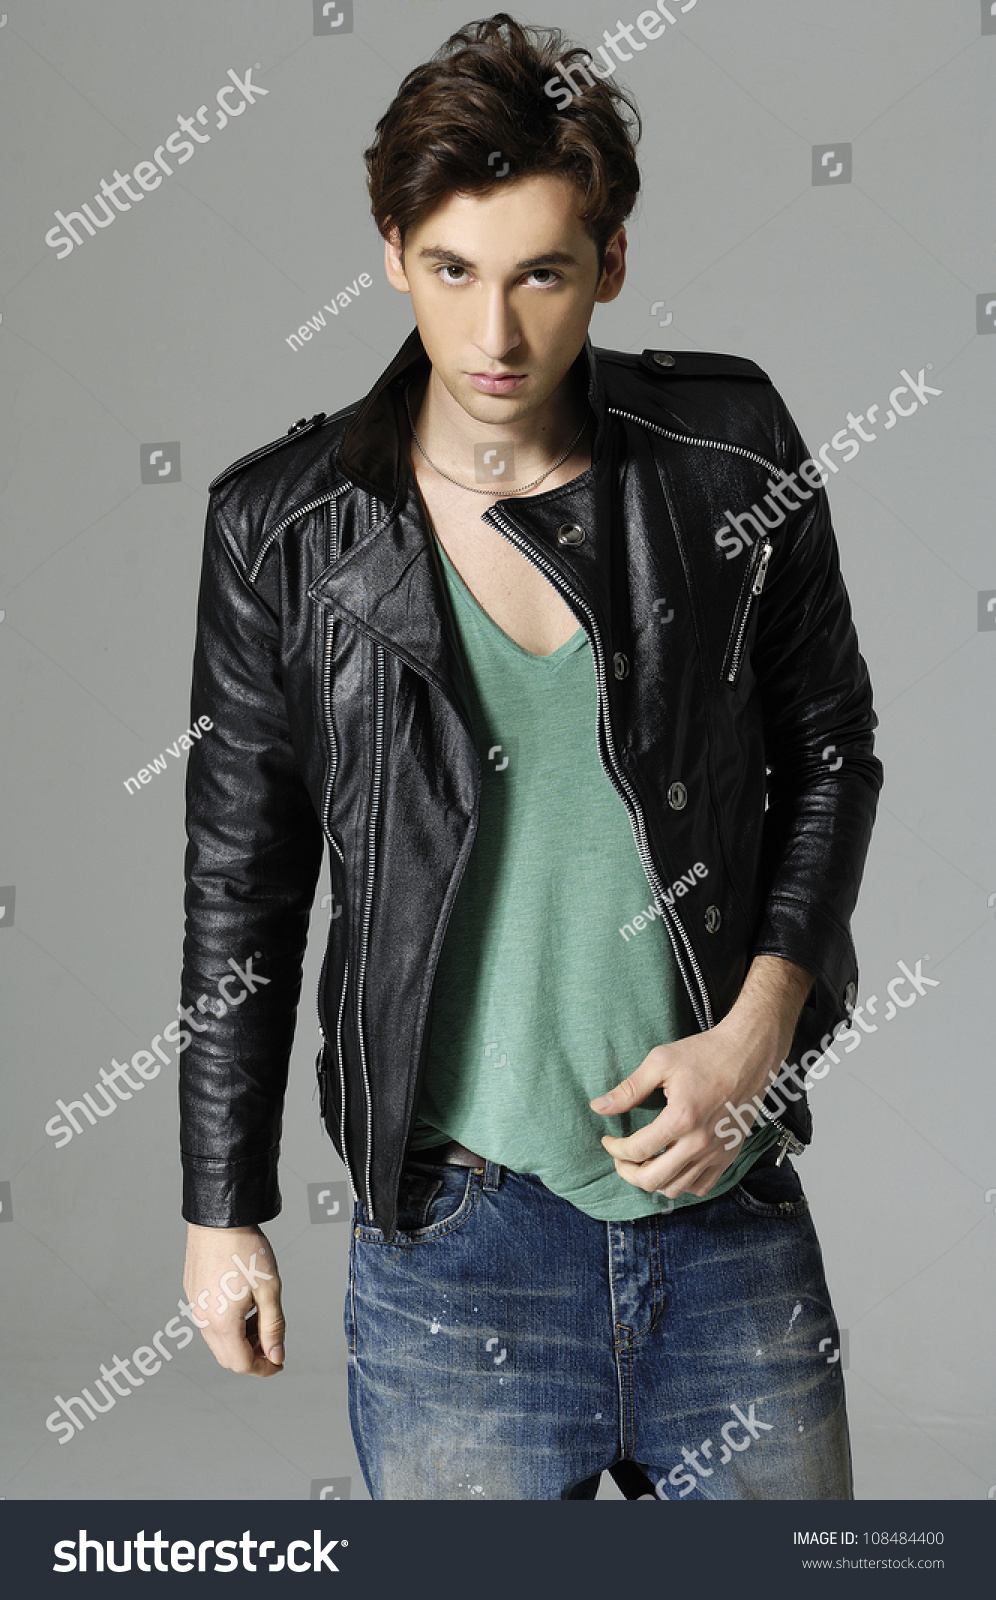 Handsome Young Man Tshirt Jeans Leather Stock Photo 108484400 ...